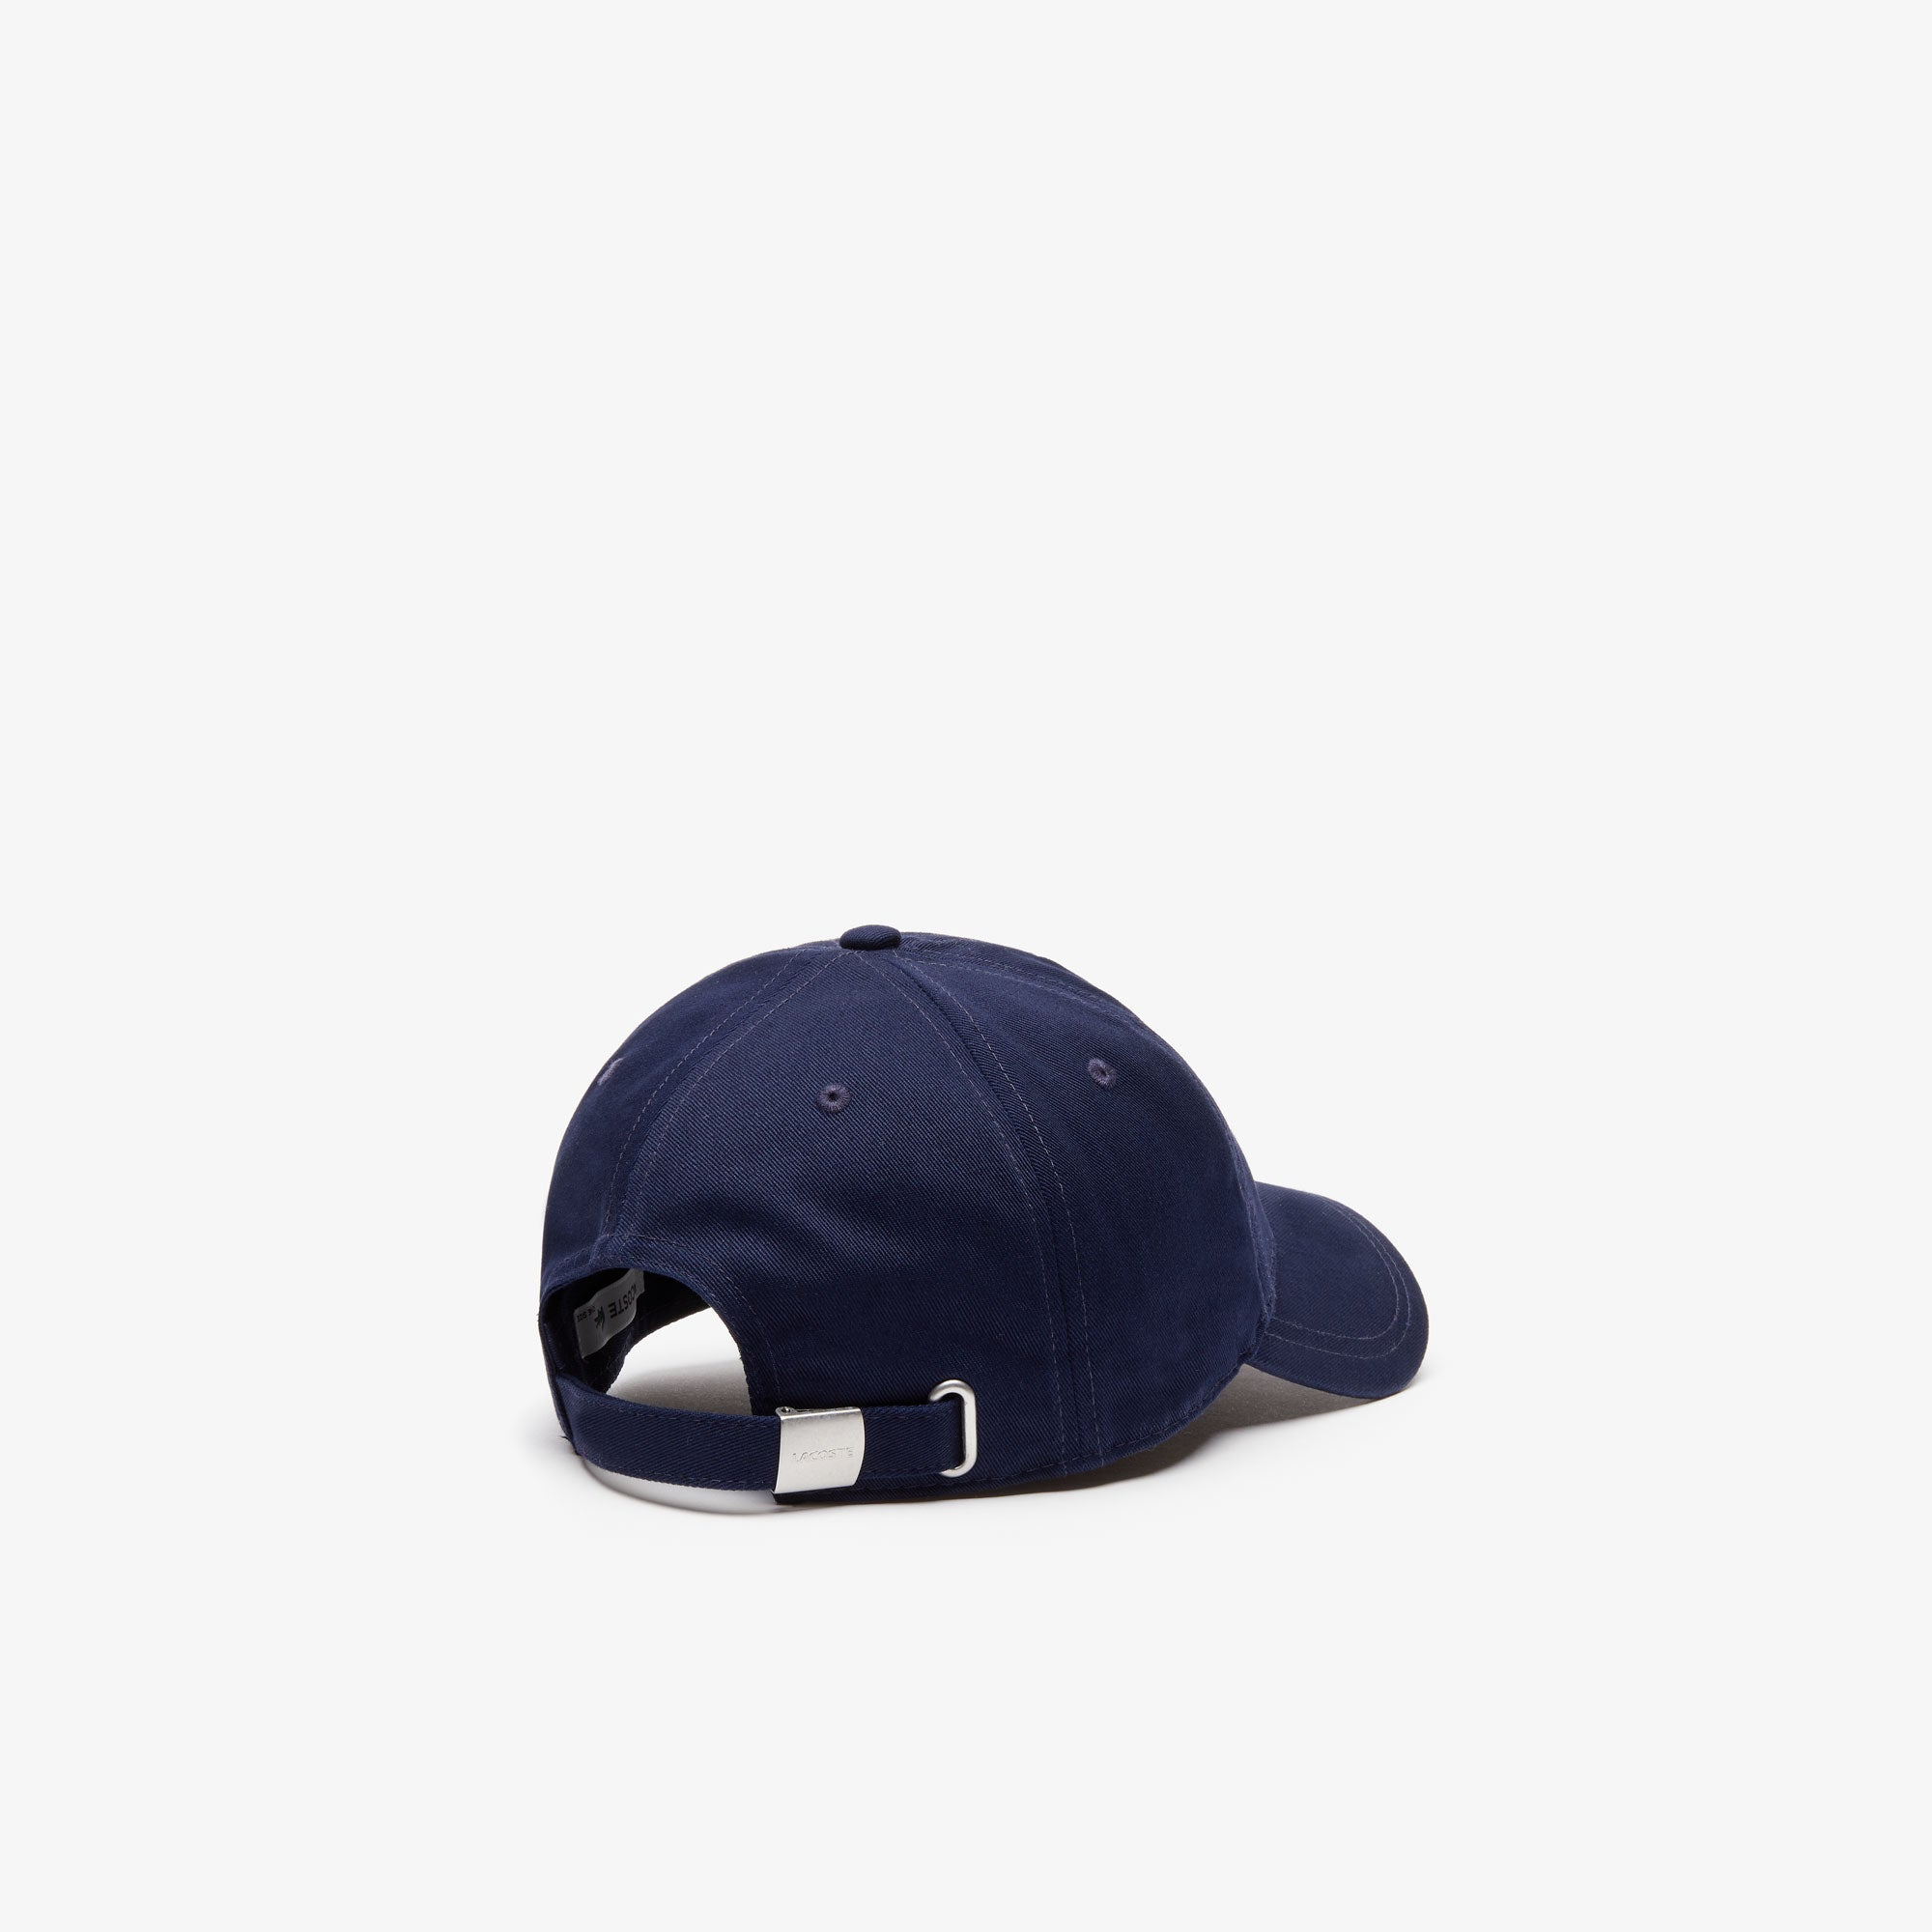 Men's Embroidered Crocodile Cotton Cap NAVY BLUE